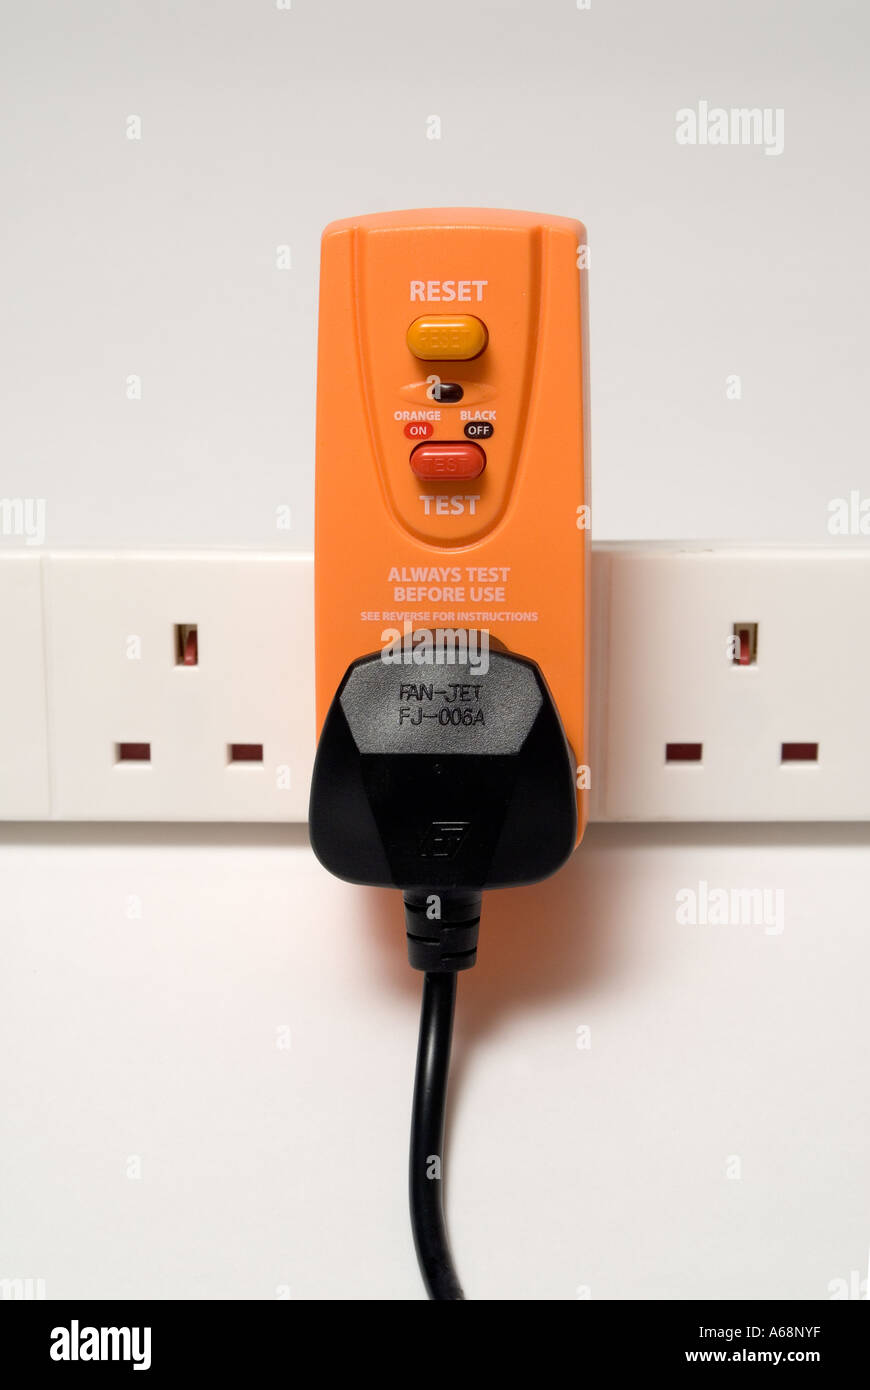 Earth Leakage Circuit Breaker Stock Photos Portable Rcb Residual Current Plug In Device To Help Protect Users From Electrocution Whilst Using